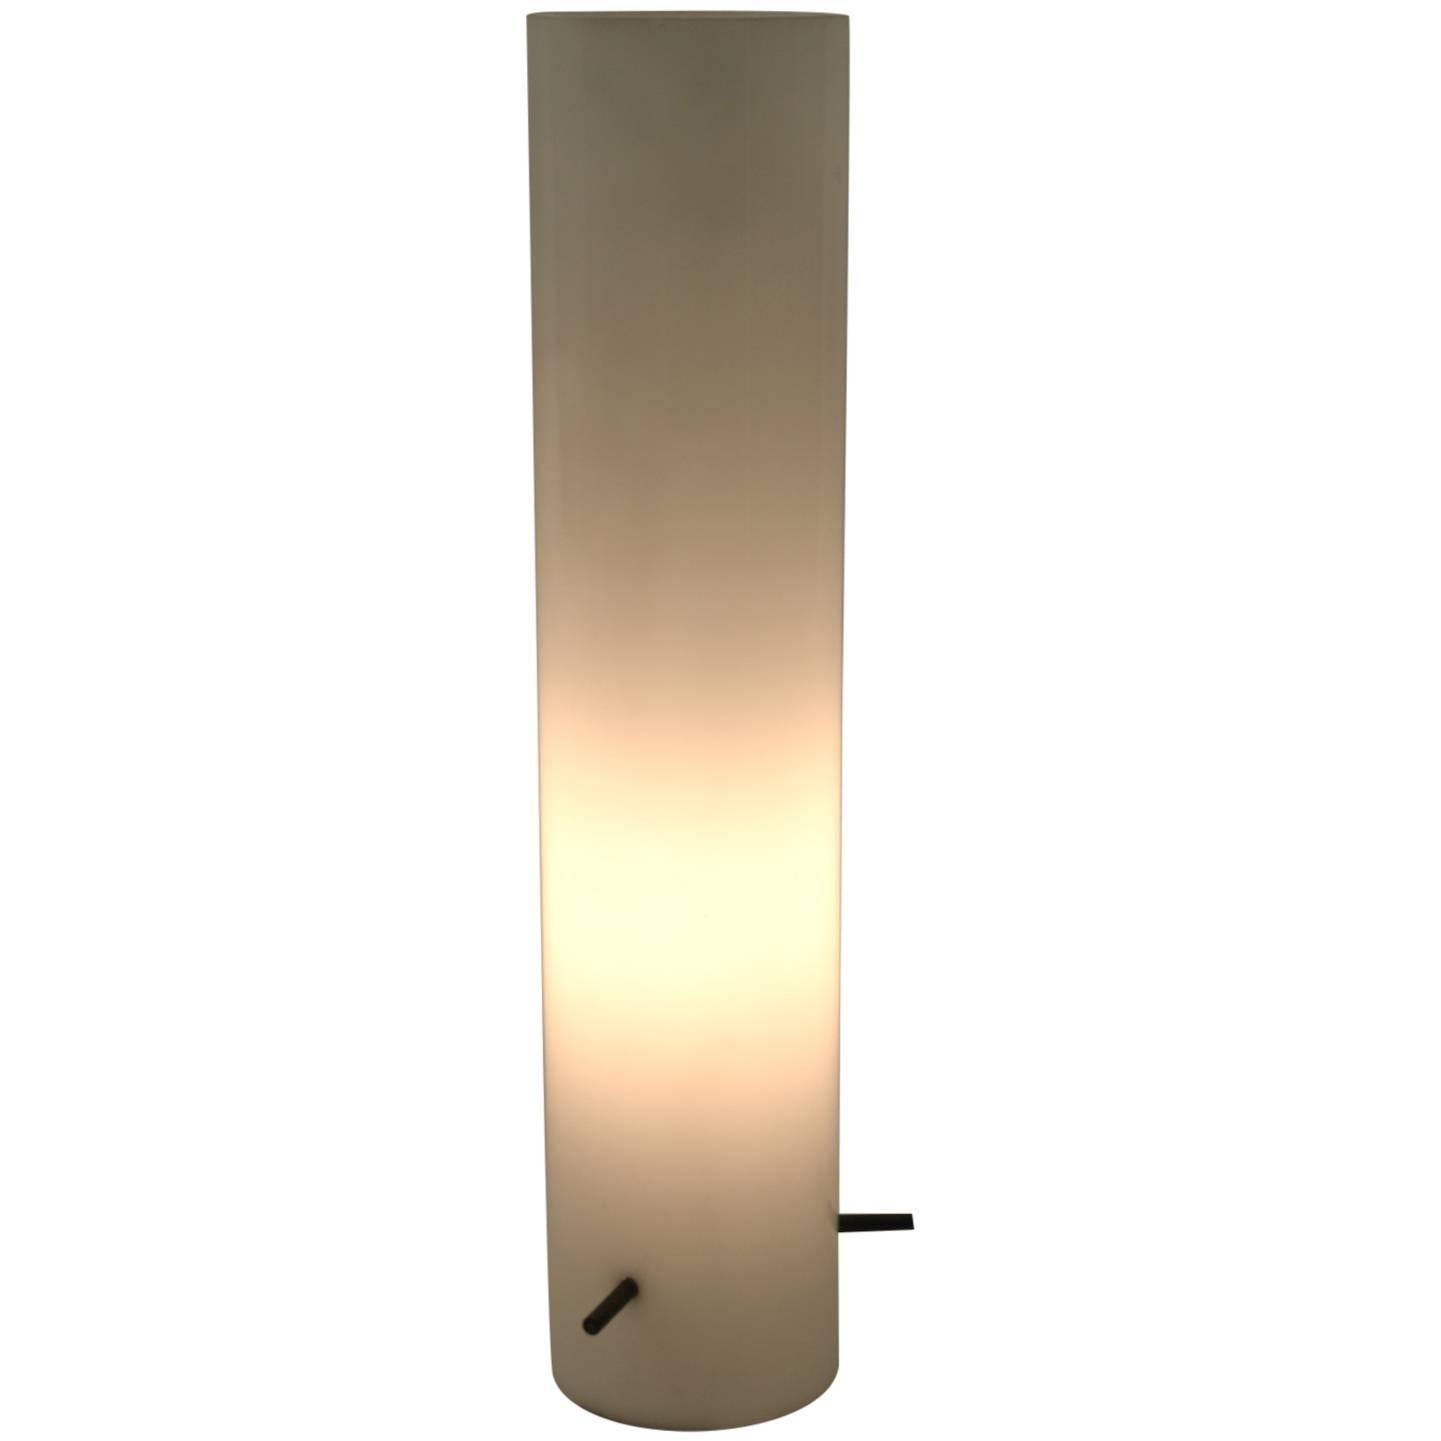 Cylindrical Glass Table Lamp Attributed to Stilnovo